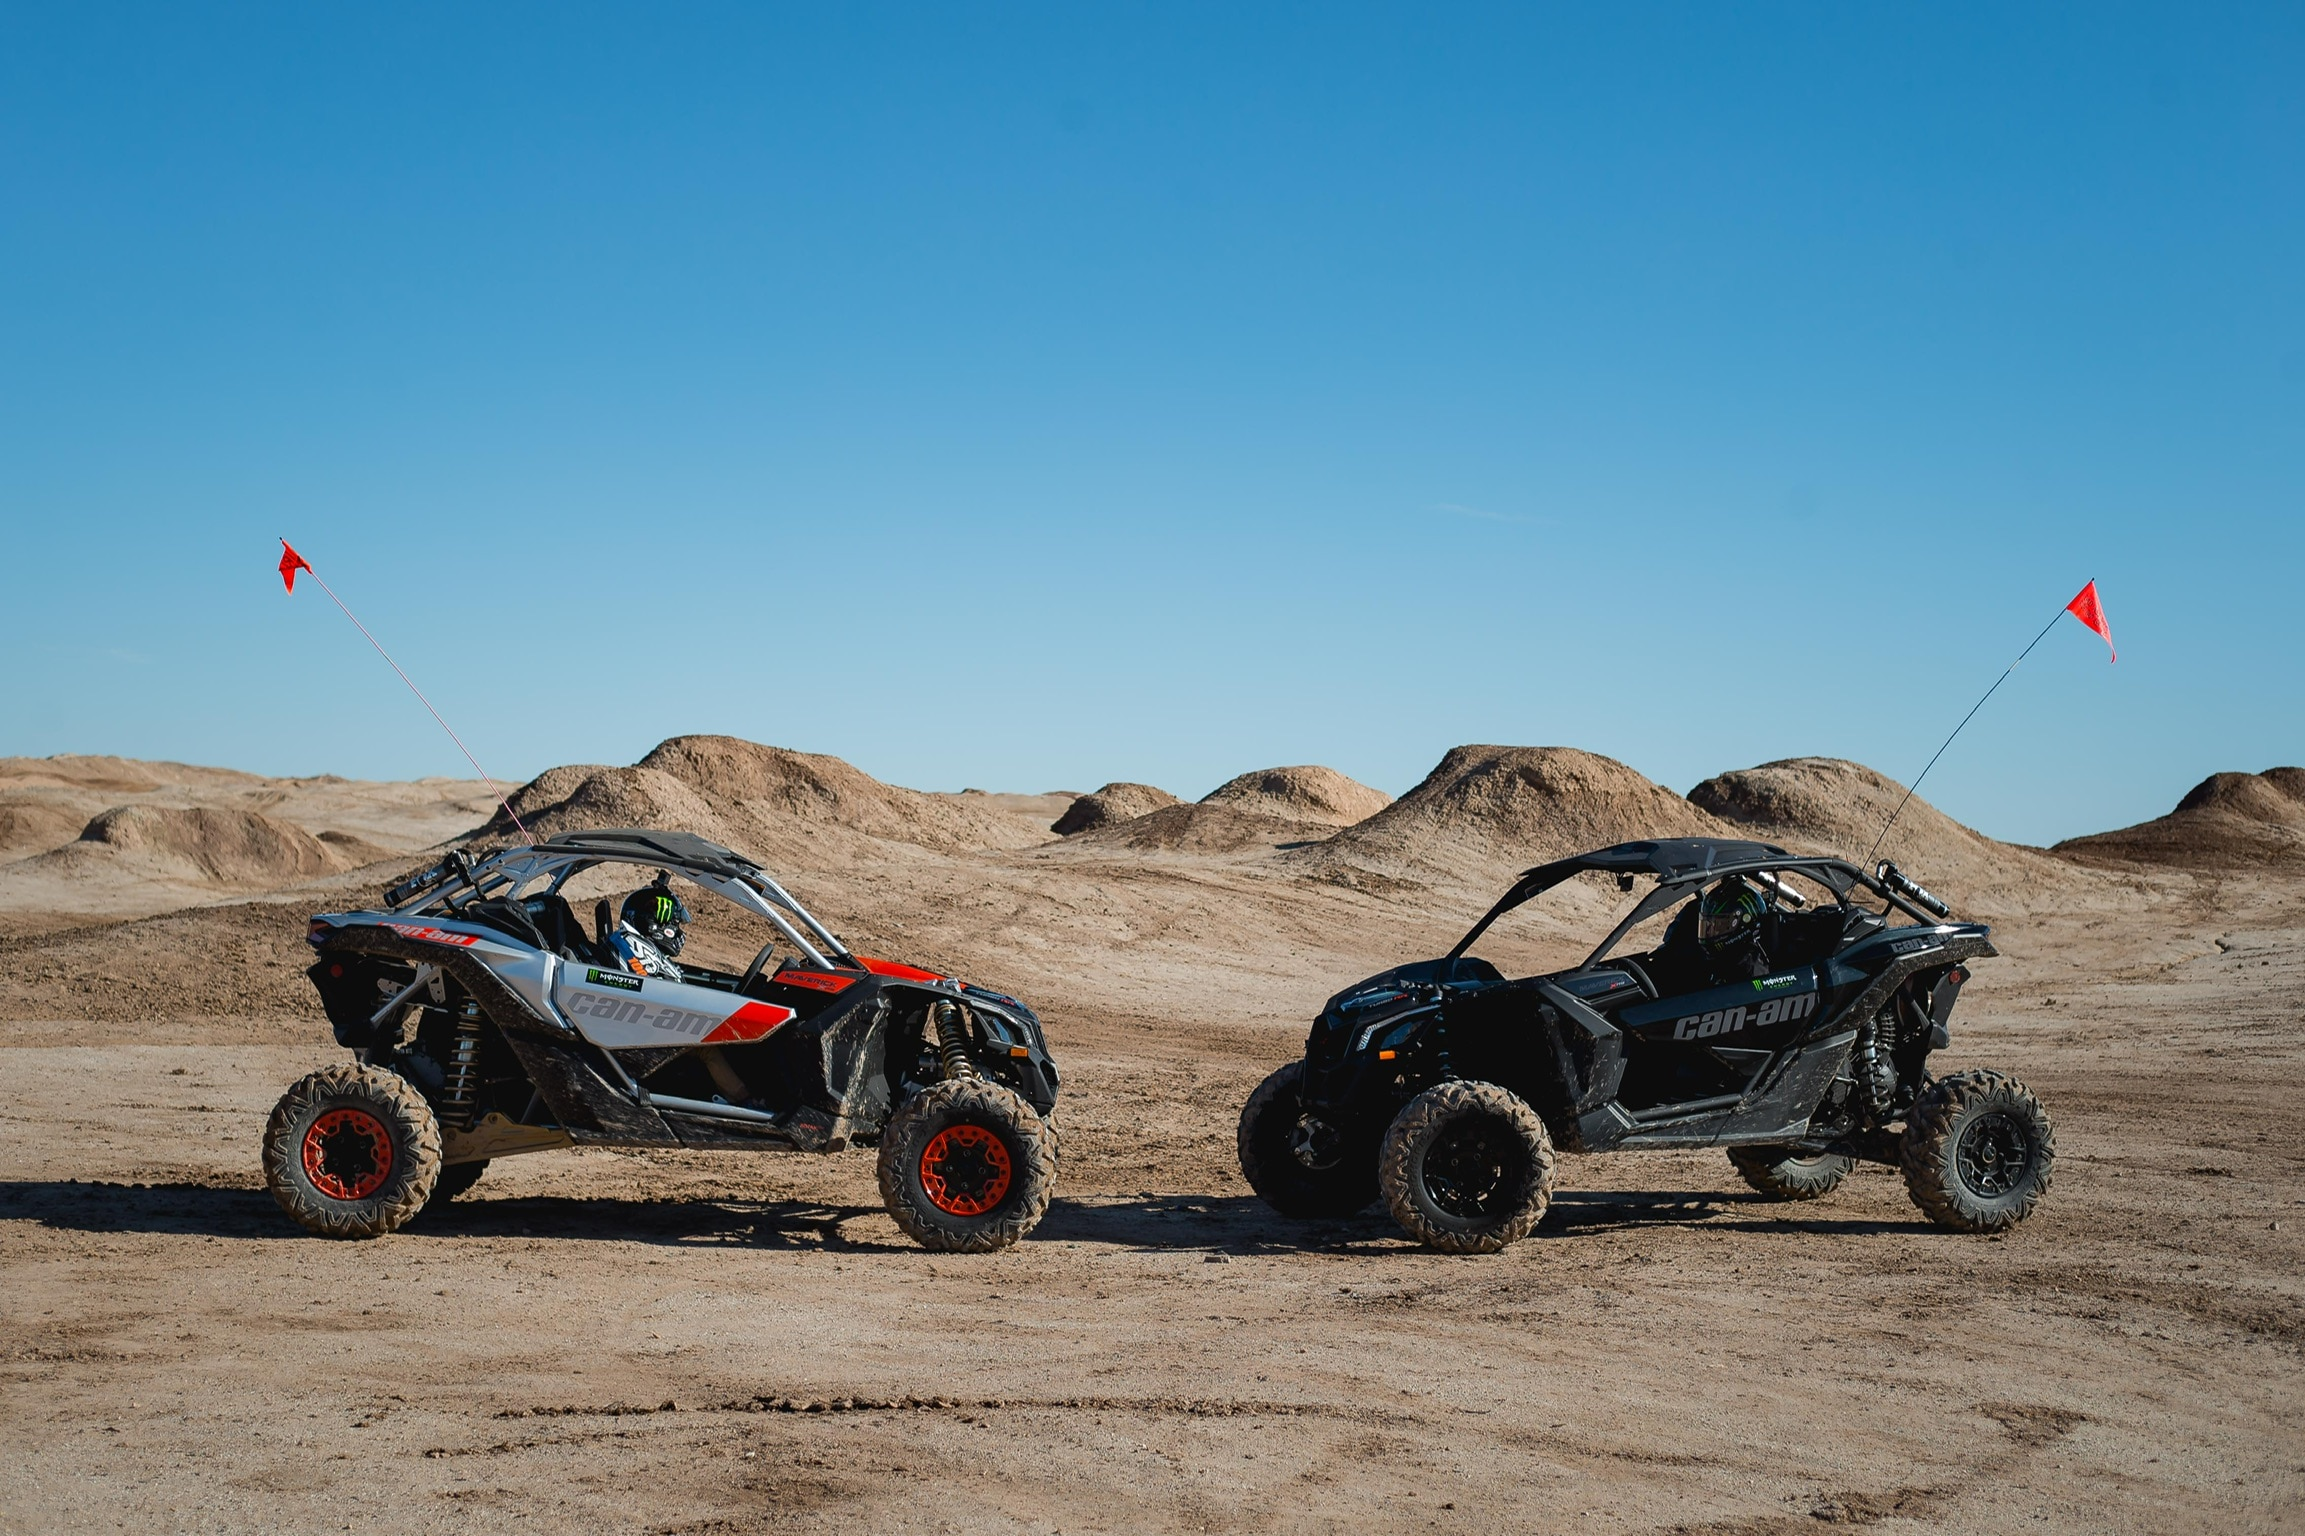 Bryan and Hailie Deegan Can-Am Off-Road